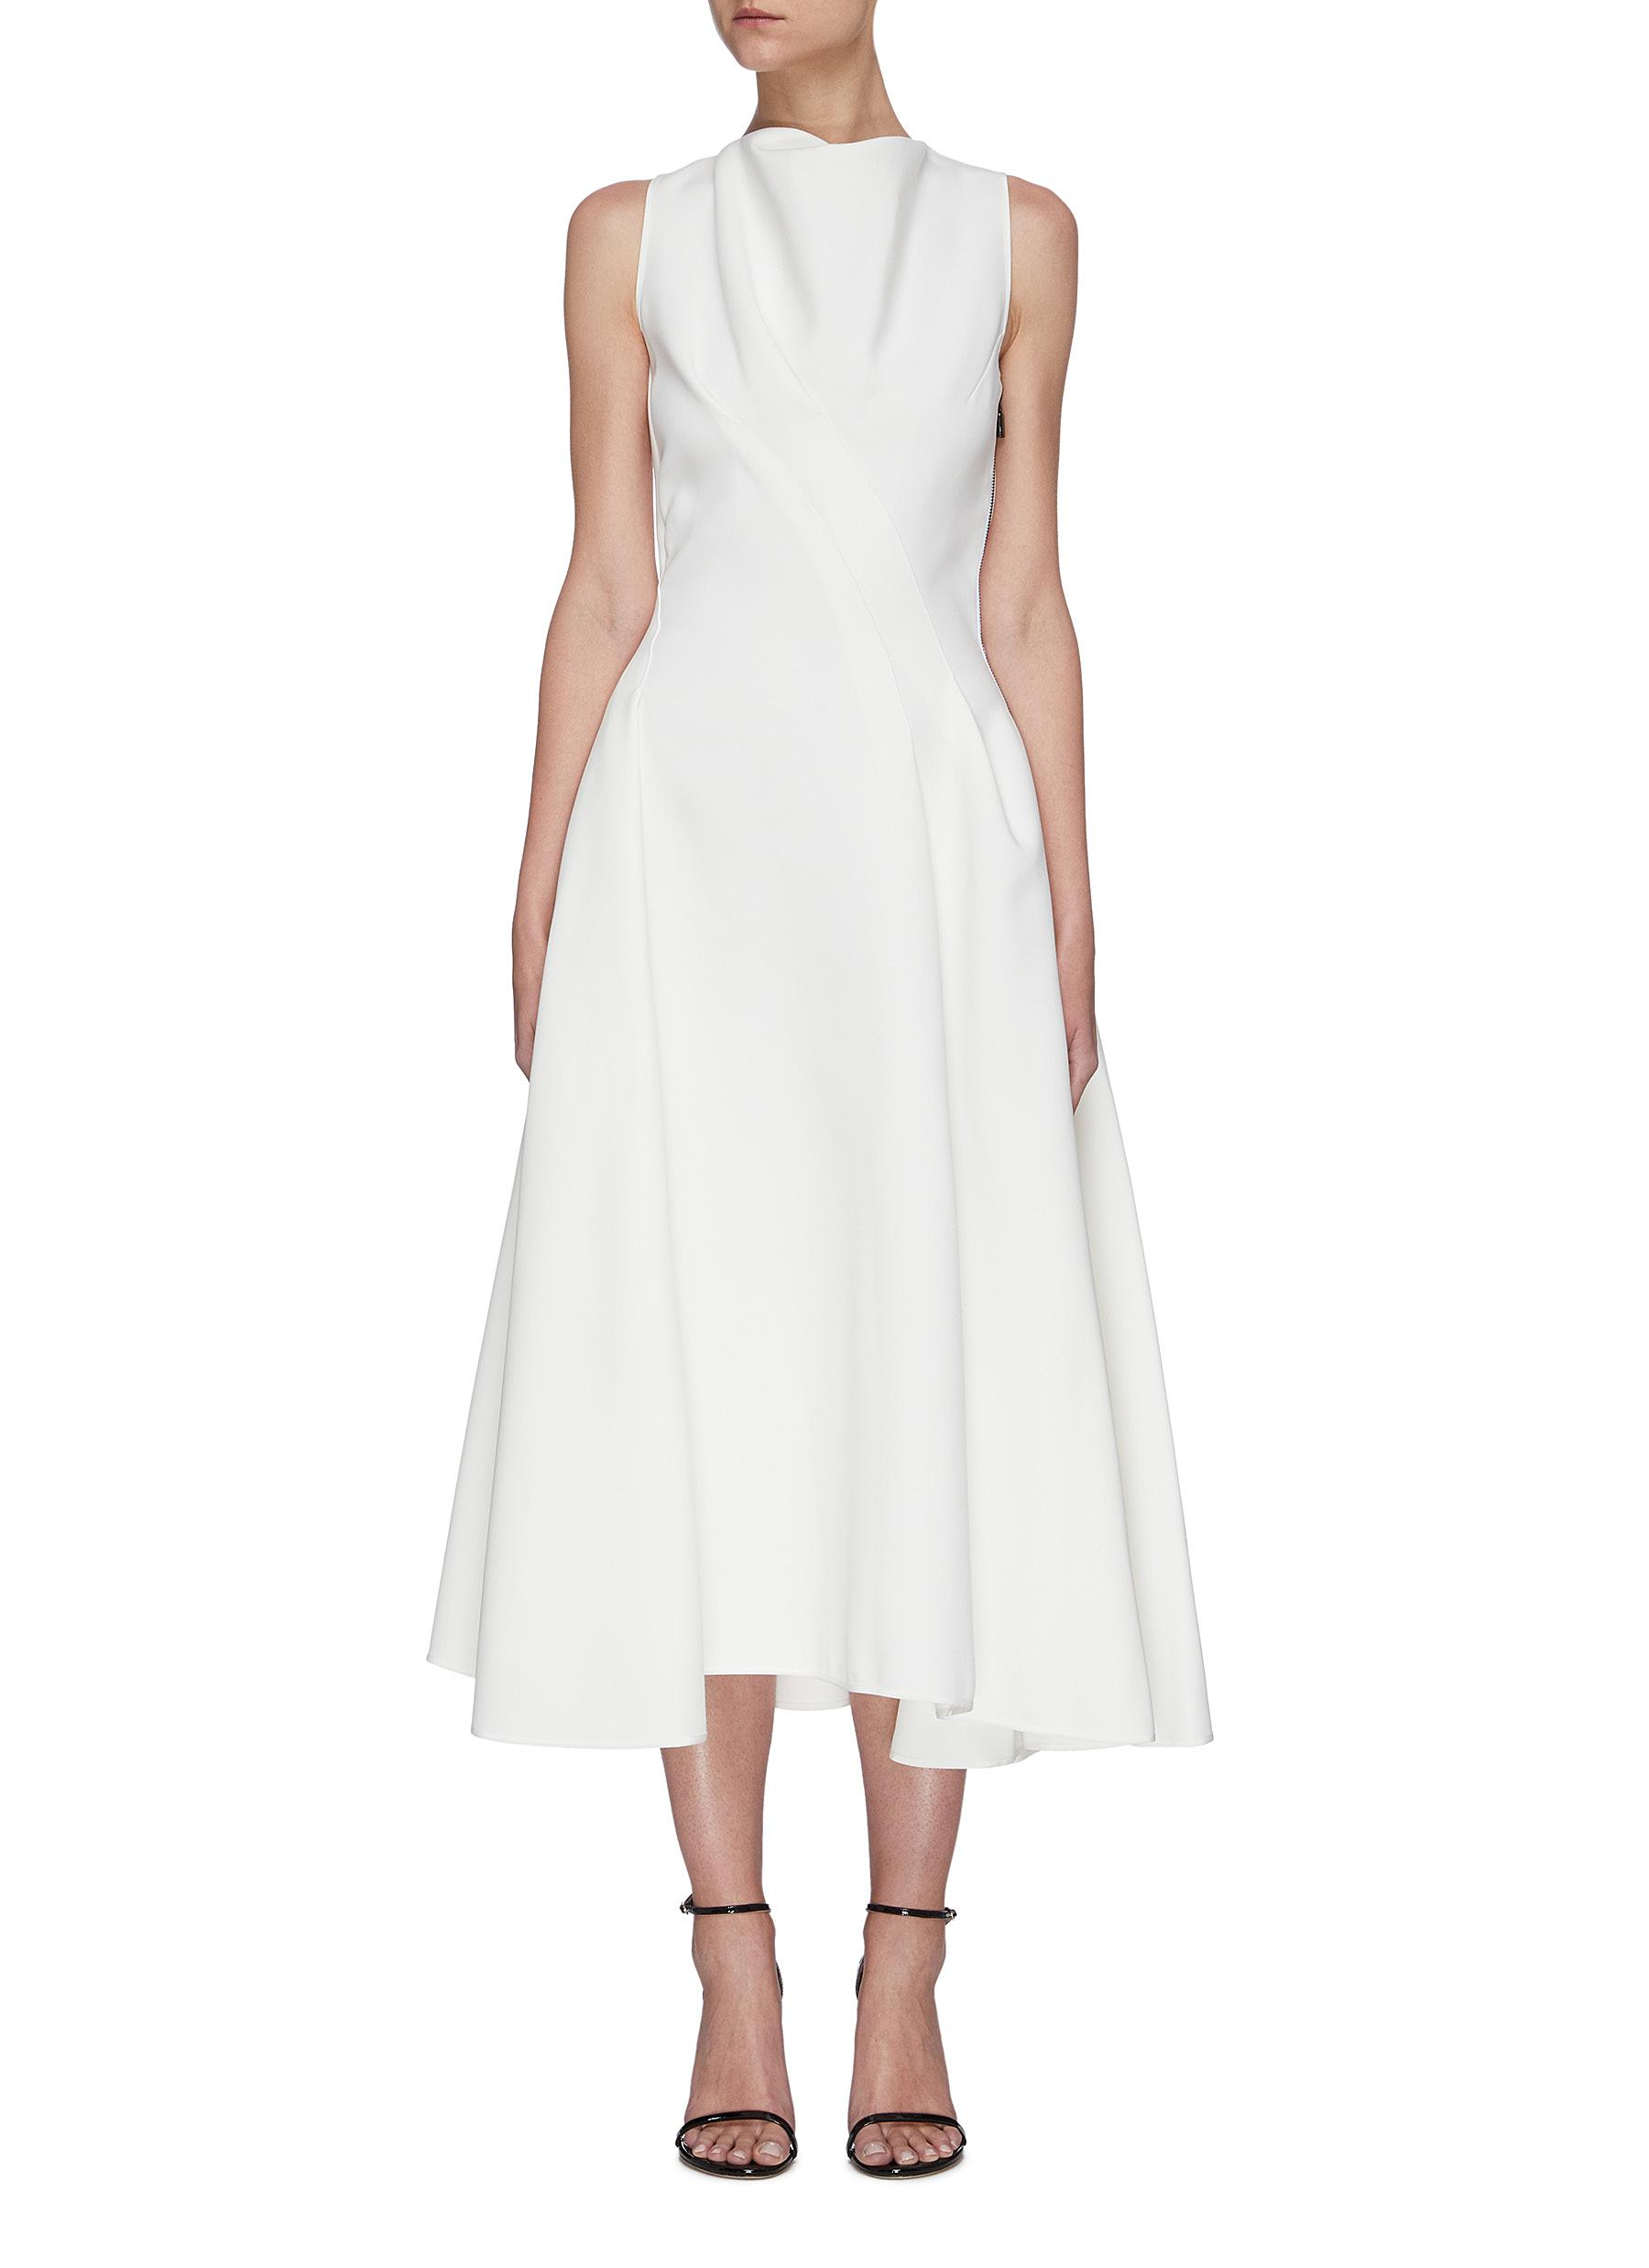 Buy Maticevski Dresses Assured' Swing Dress